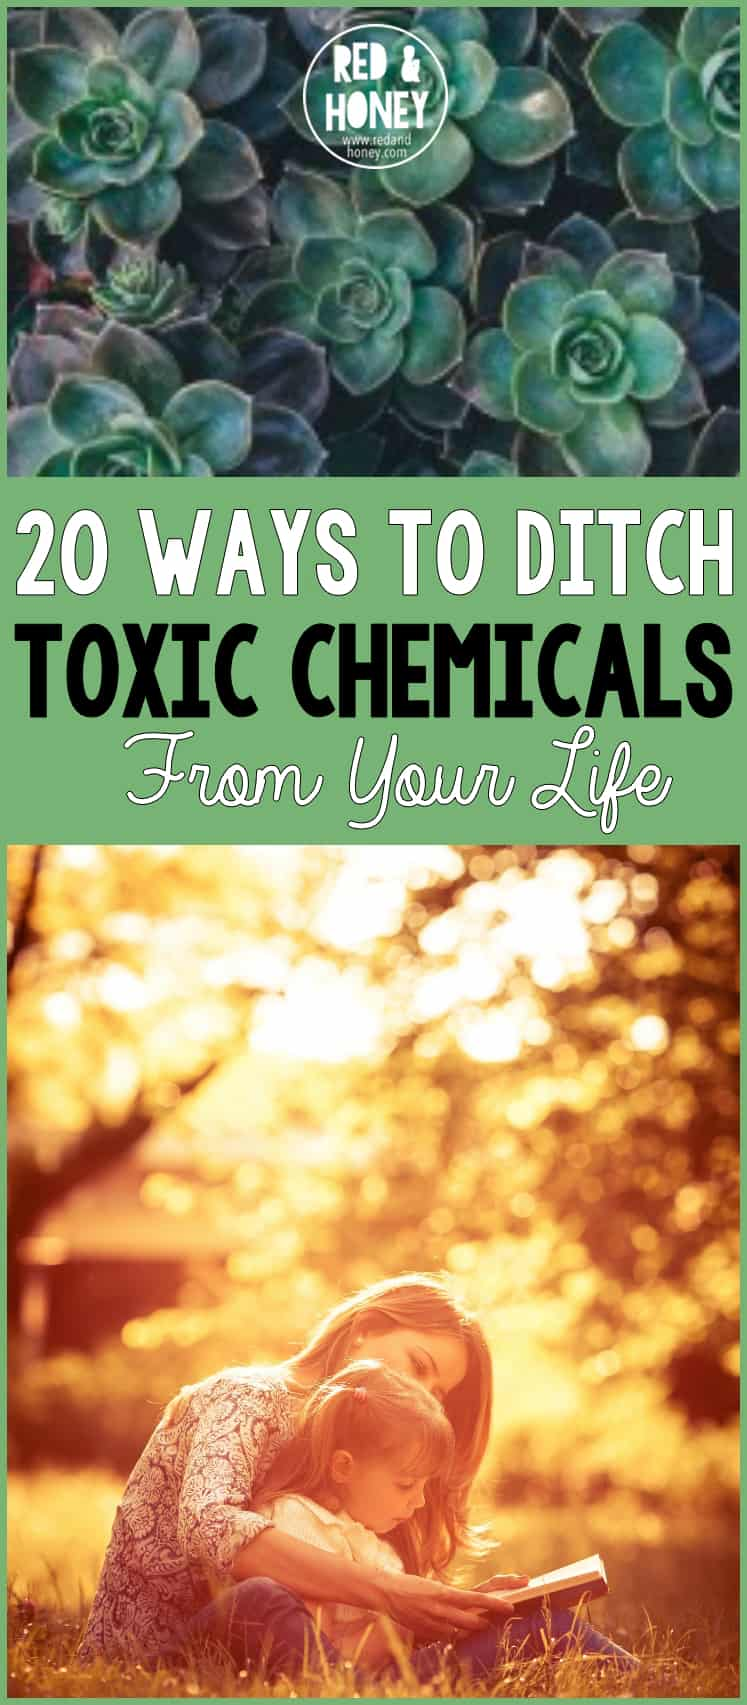 When I first started to experience chronic health issues, and realized the importance of reducing the toxic burden on my body, I was shocked at how harsh the products are that we use in and around our bodies every day! After cutting out the toxic chemicals in many areas of my life these past few years, I've noticed a huge difference in how I feel.